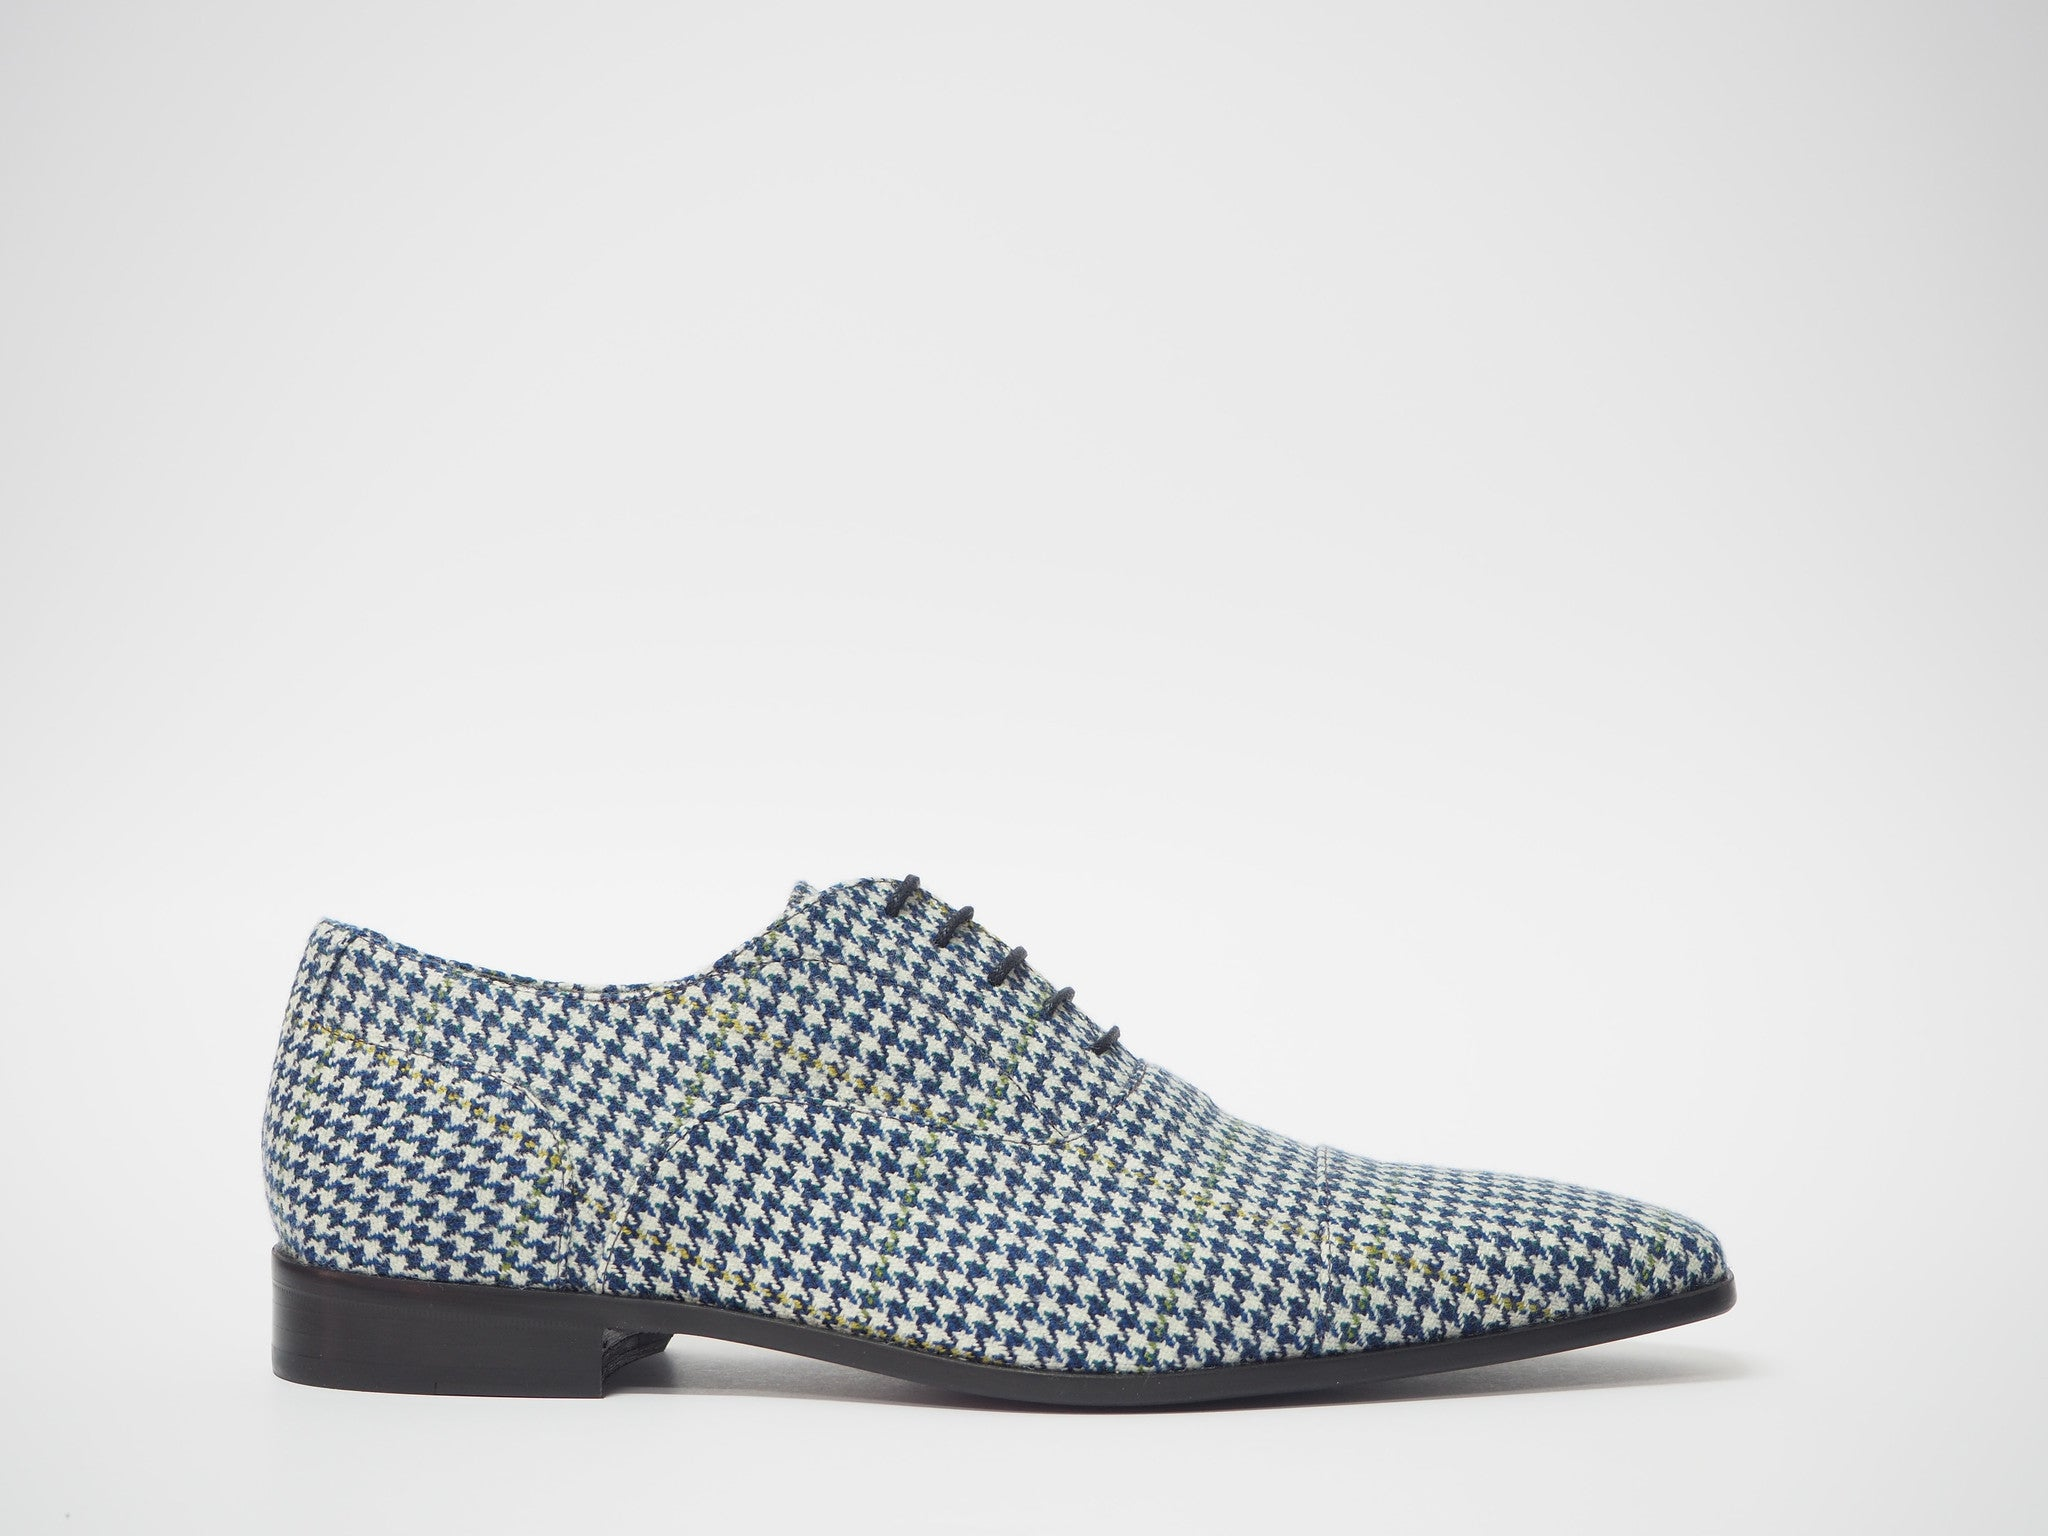 Size 45 - Blue & White Pied de Poule Oxford + Belt